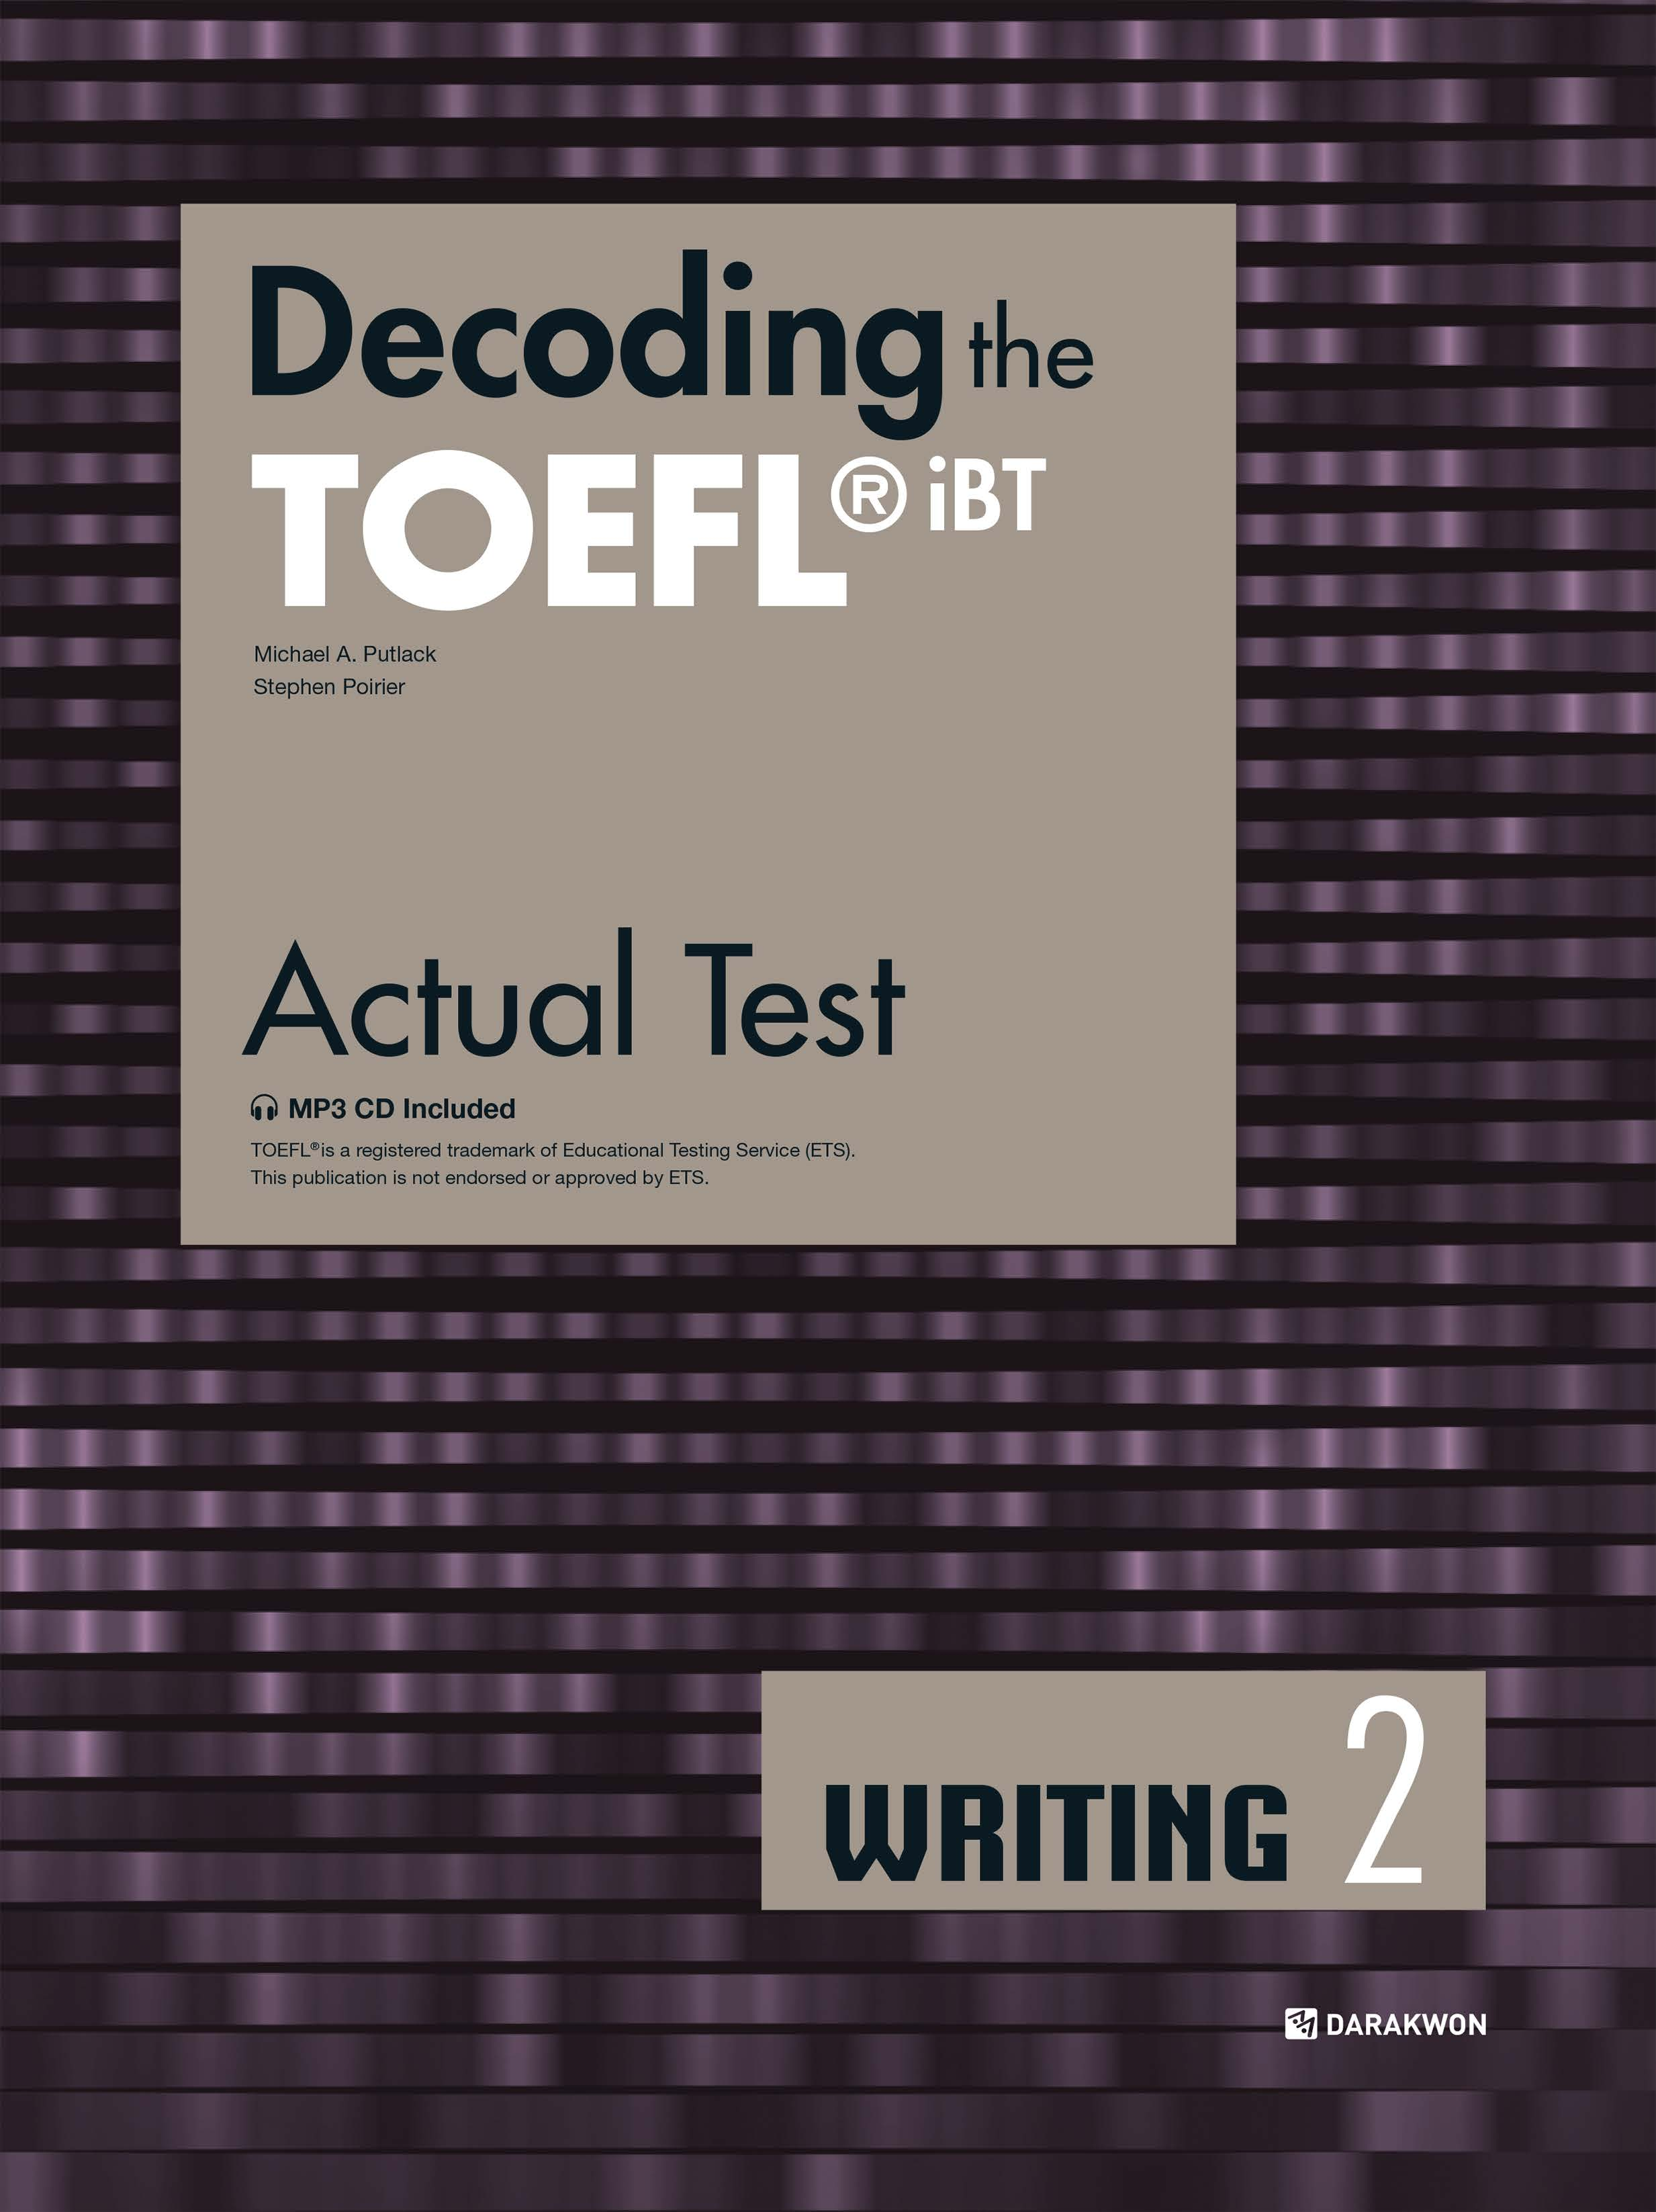 [Decoding the TOEFL iBT Actual Test] Decoding the TOEFL iBT Actual Test WRITING 2